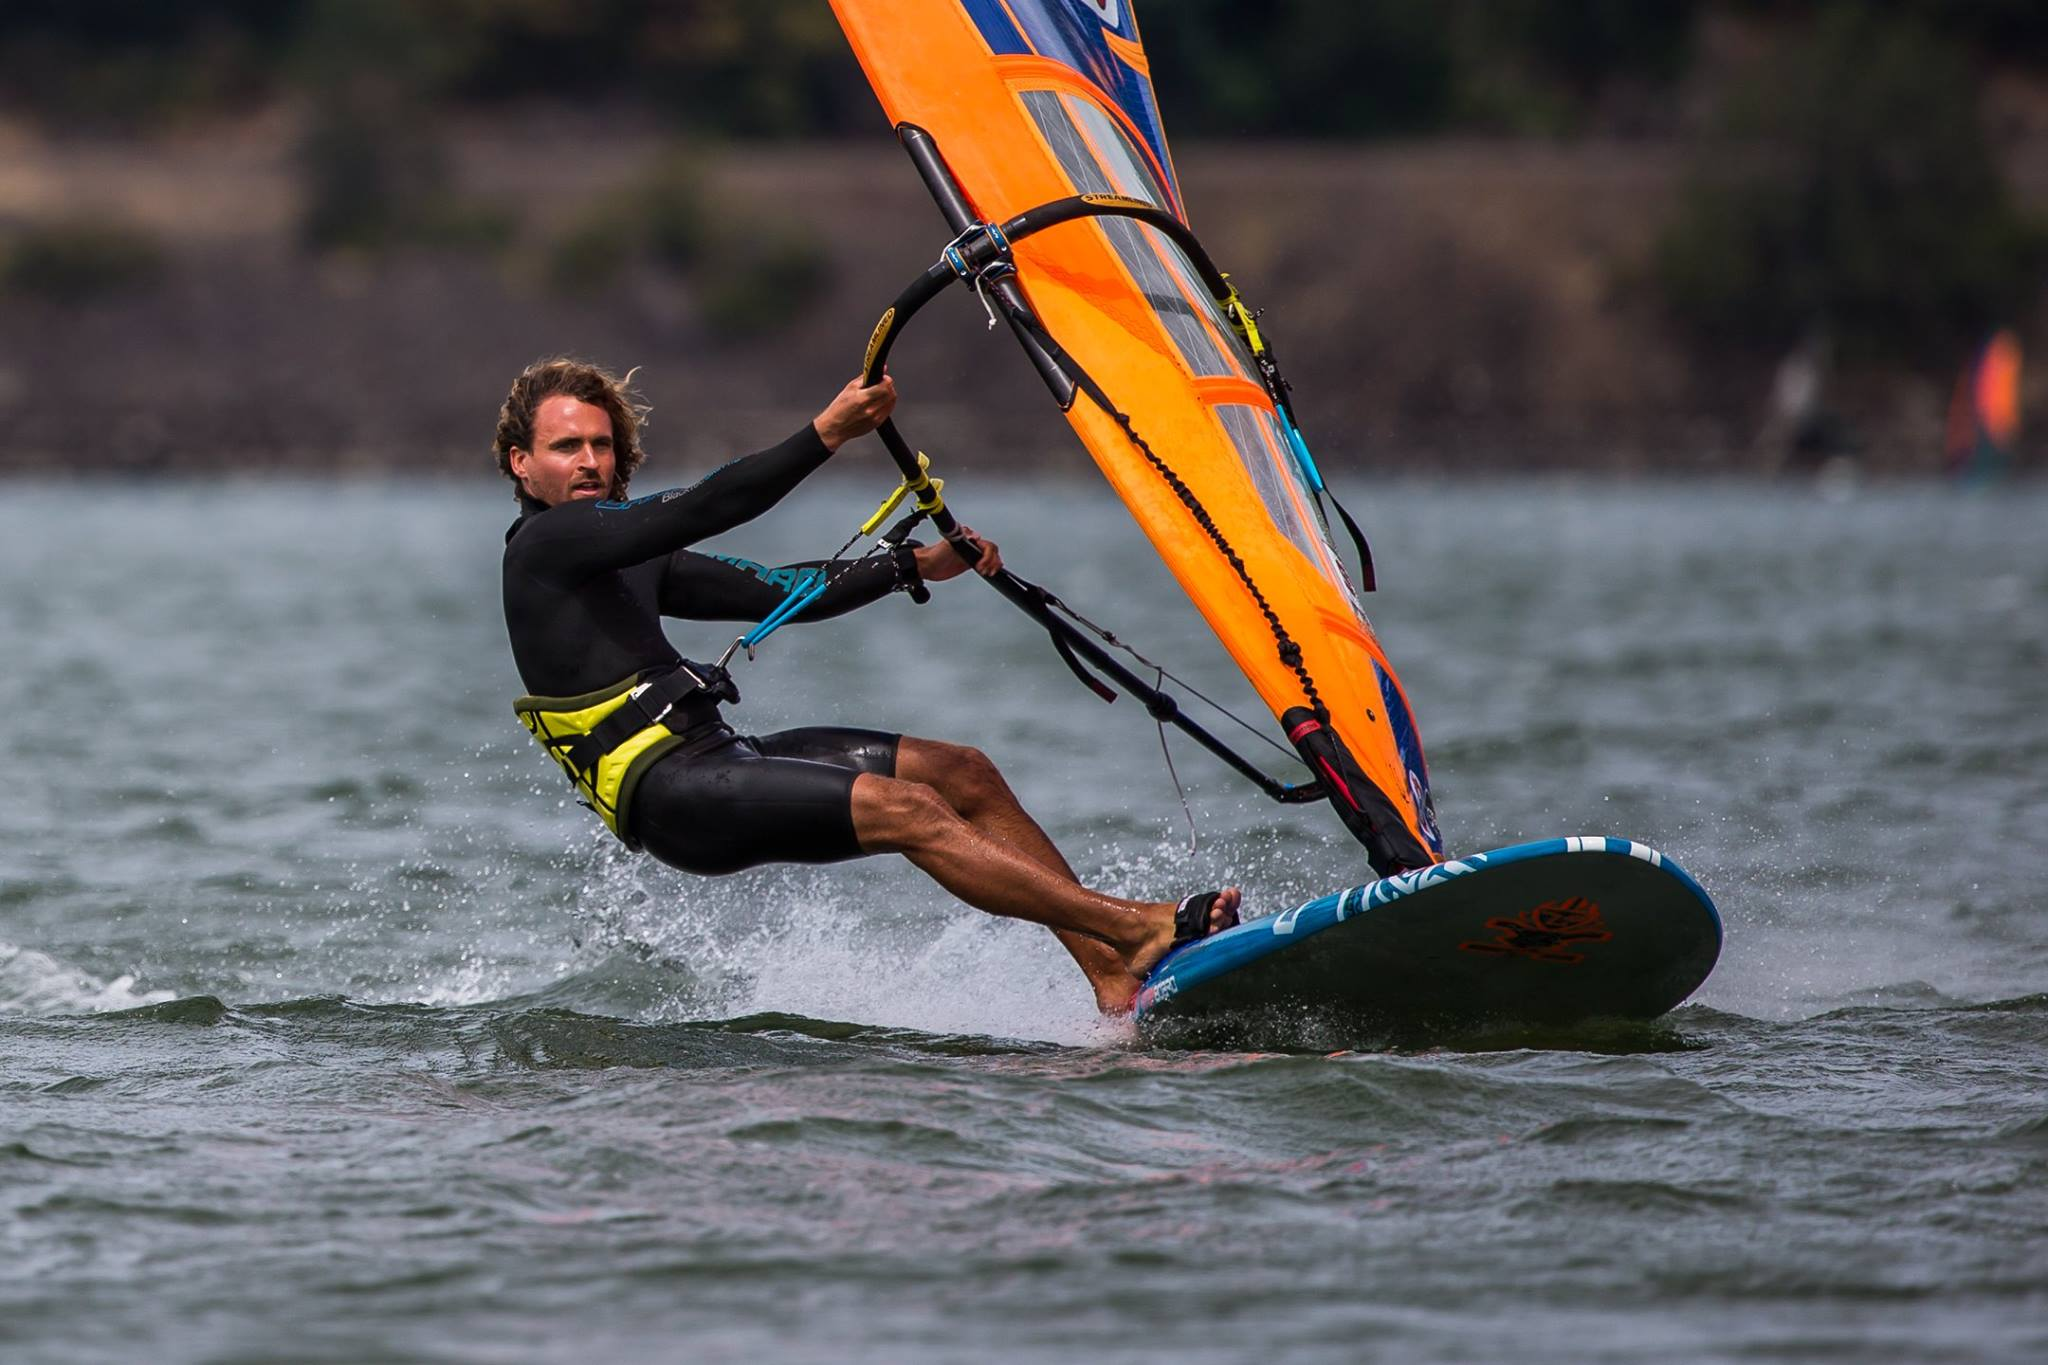 Phil Soltysiak powered up on slalom gear. Photo by Karel Tyc.